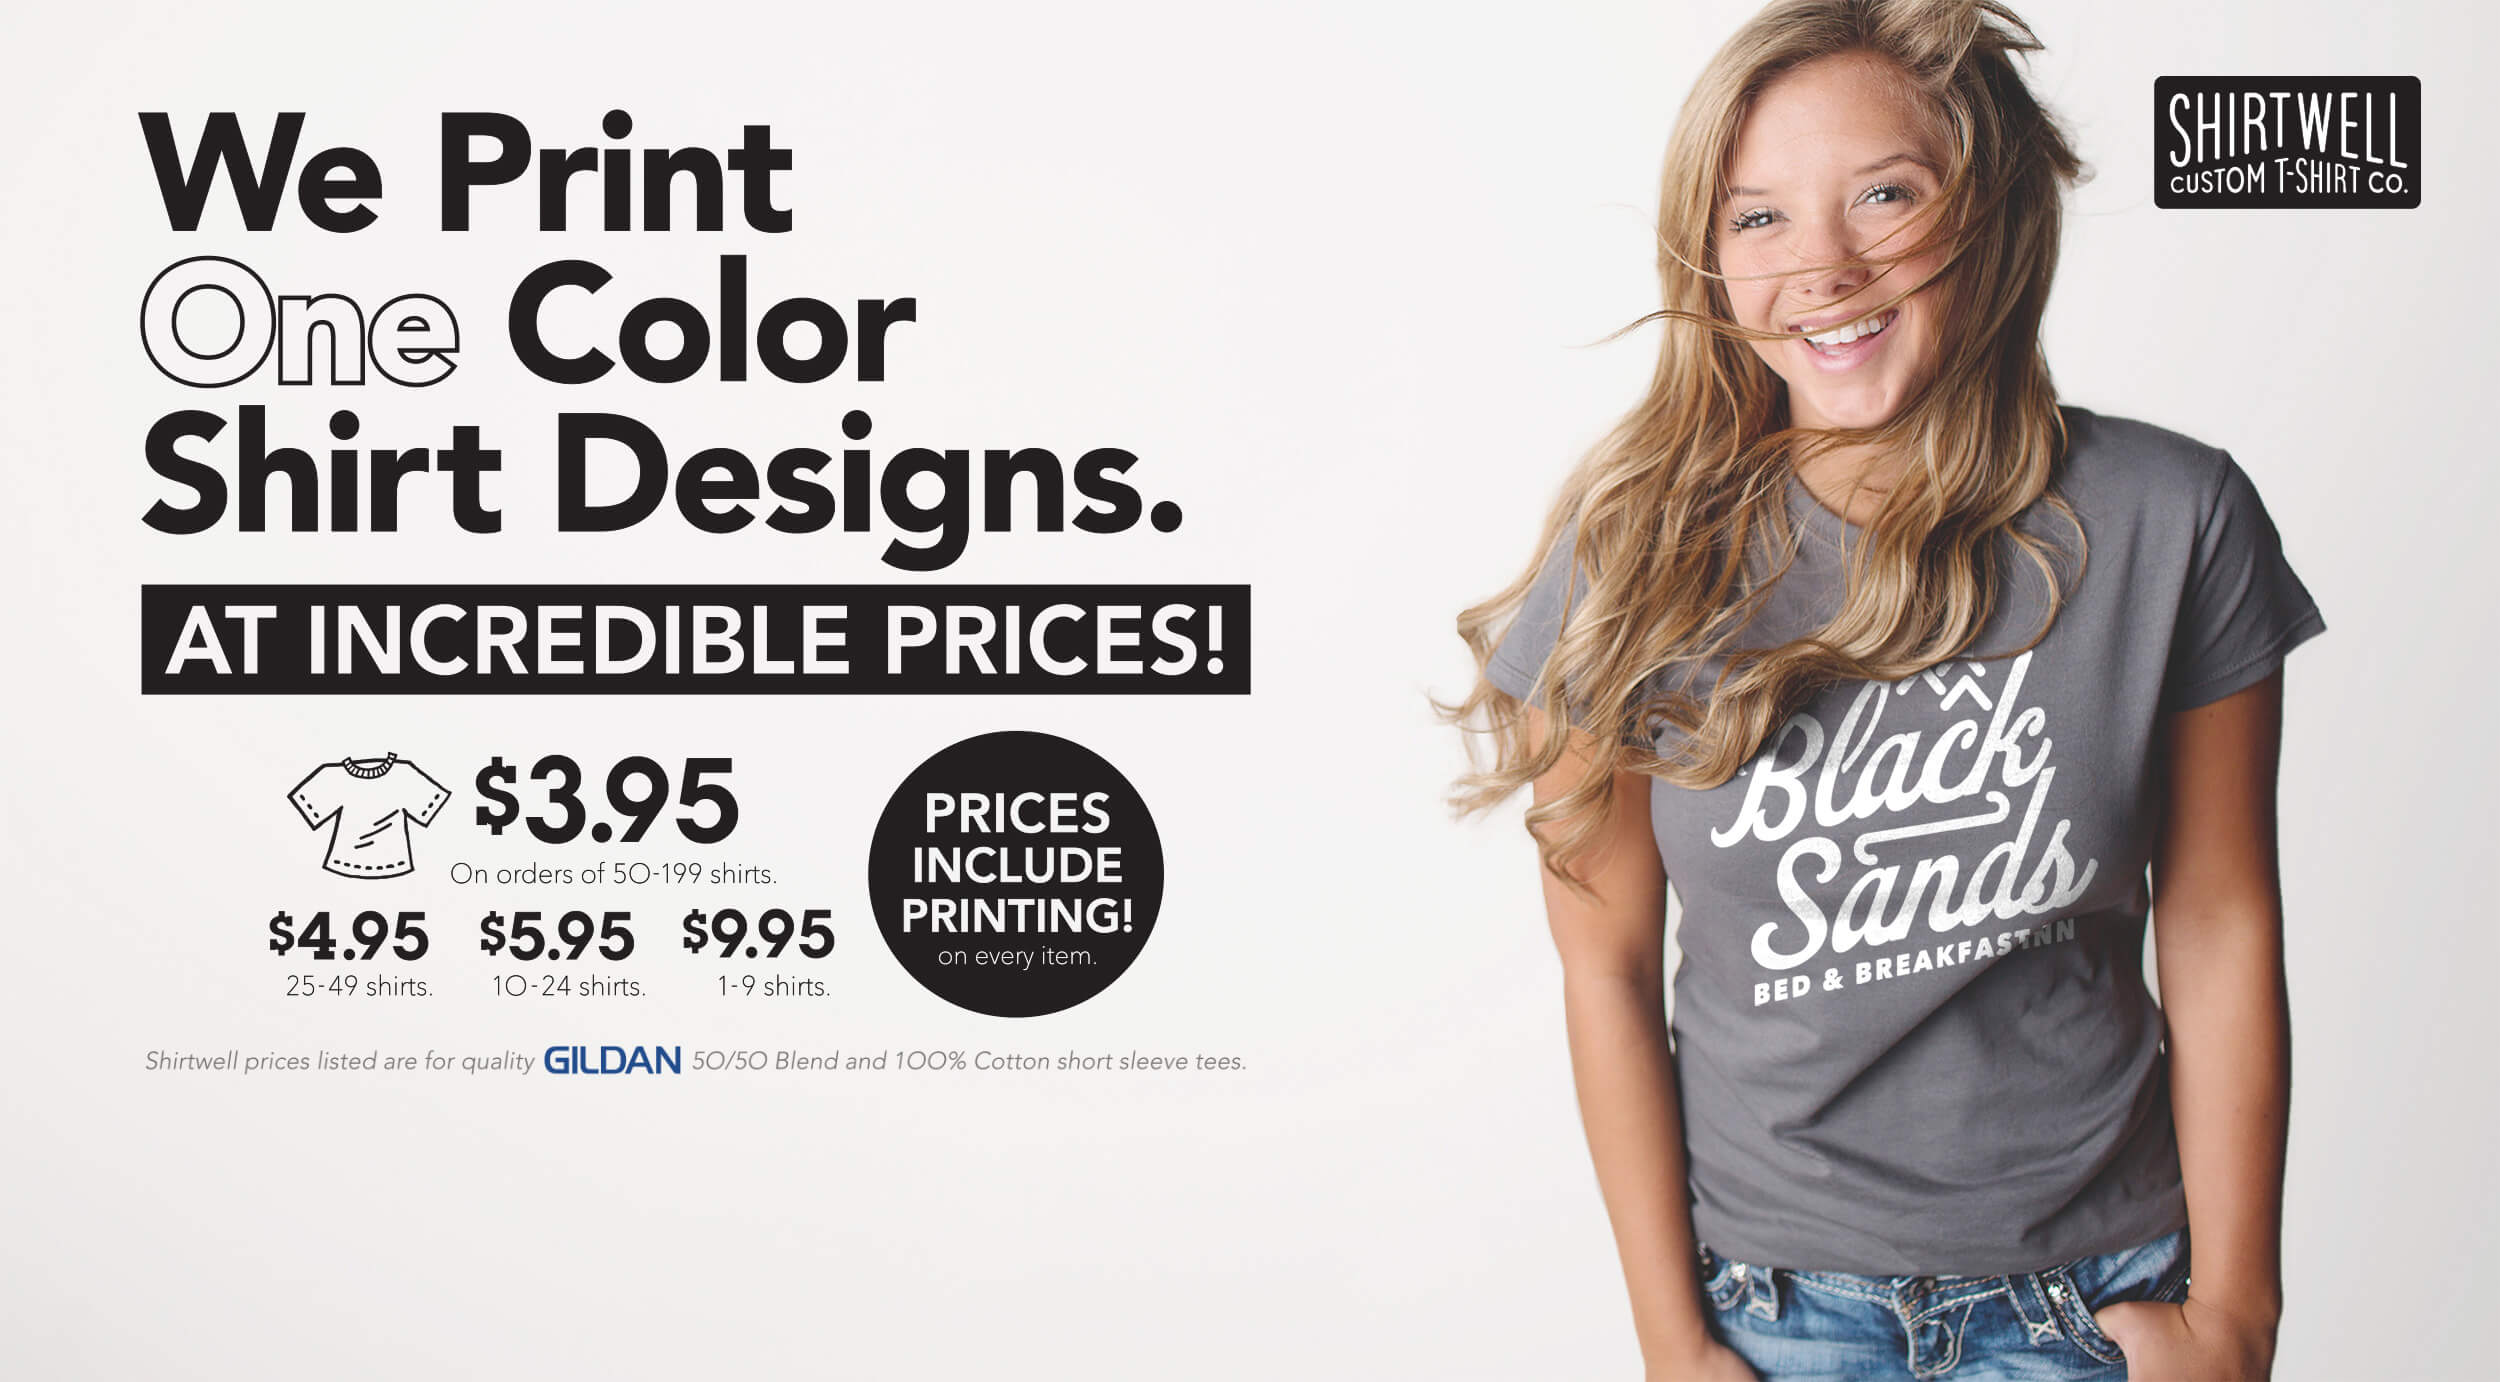 Shirtwell - 1-ink Custom Tees at Incredible Prices. Create Your Own ...